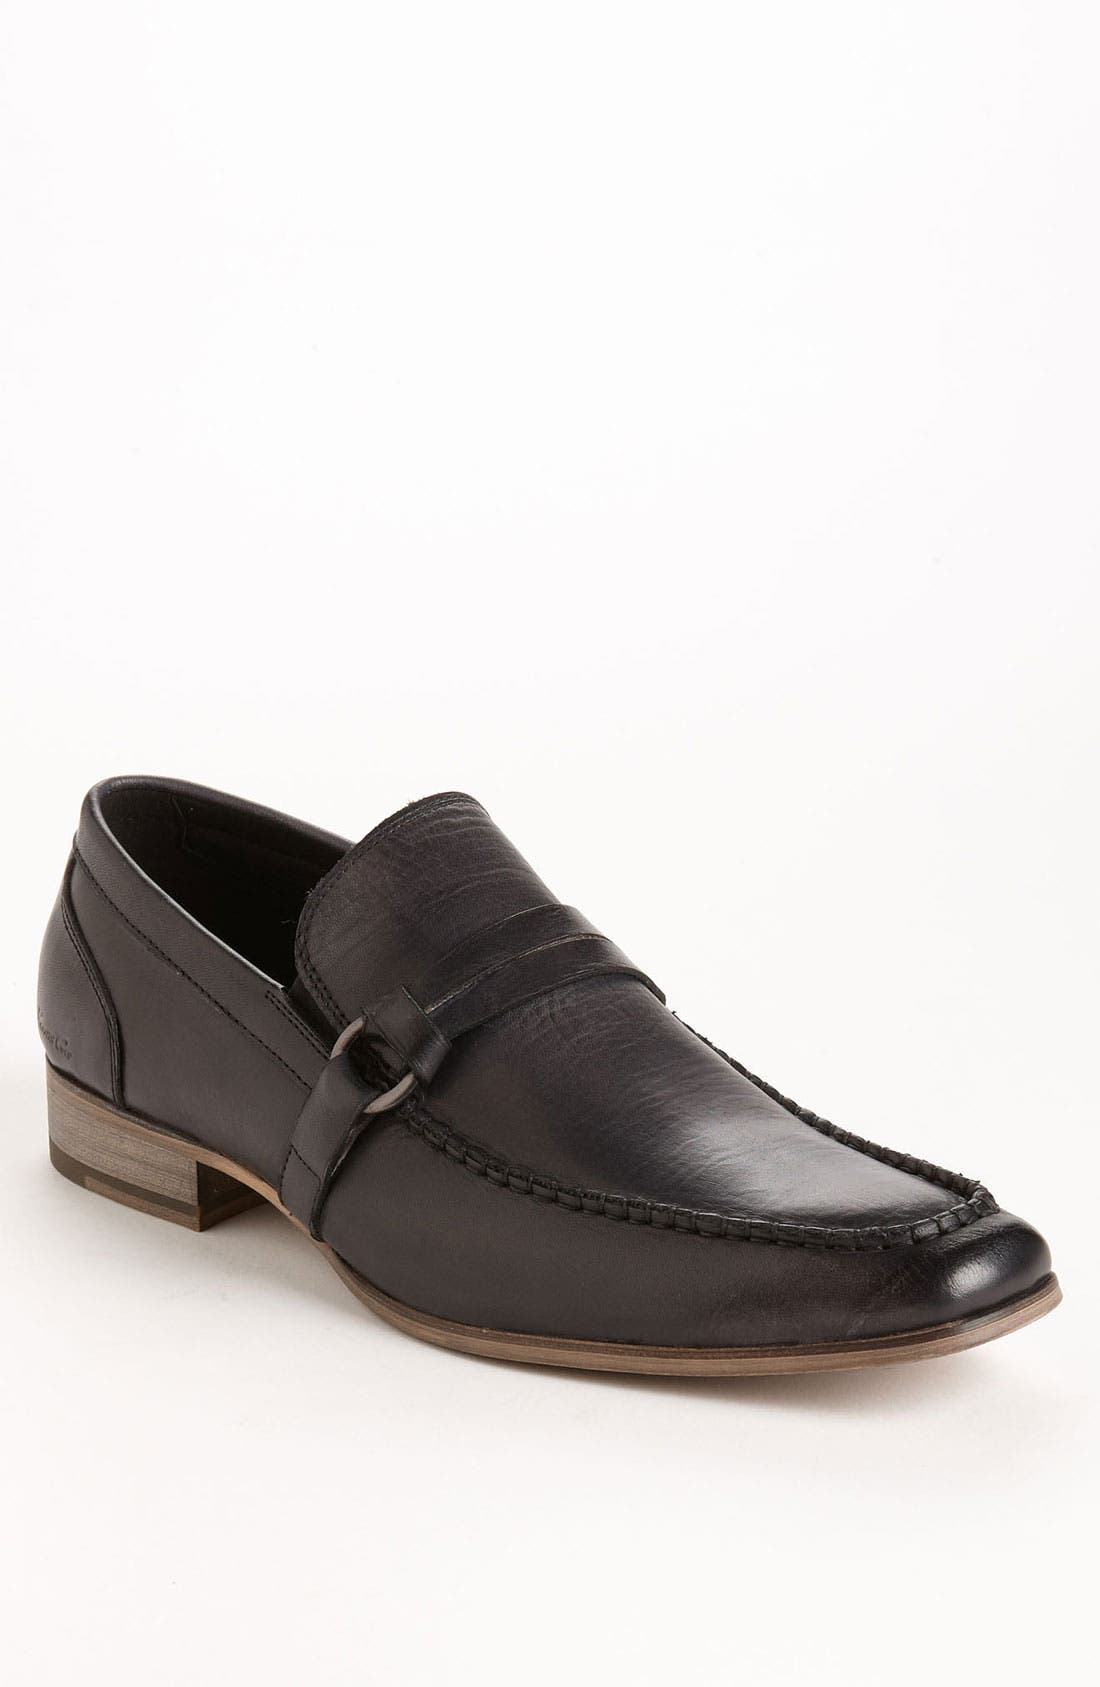 Alternate Image 1 Selected - Kenneth Cole New York 'Big Leather' Loafer